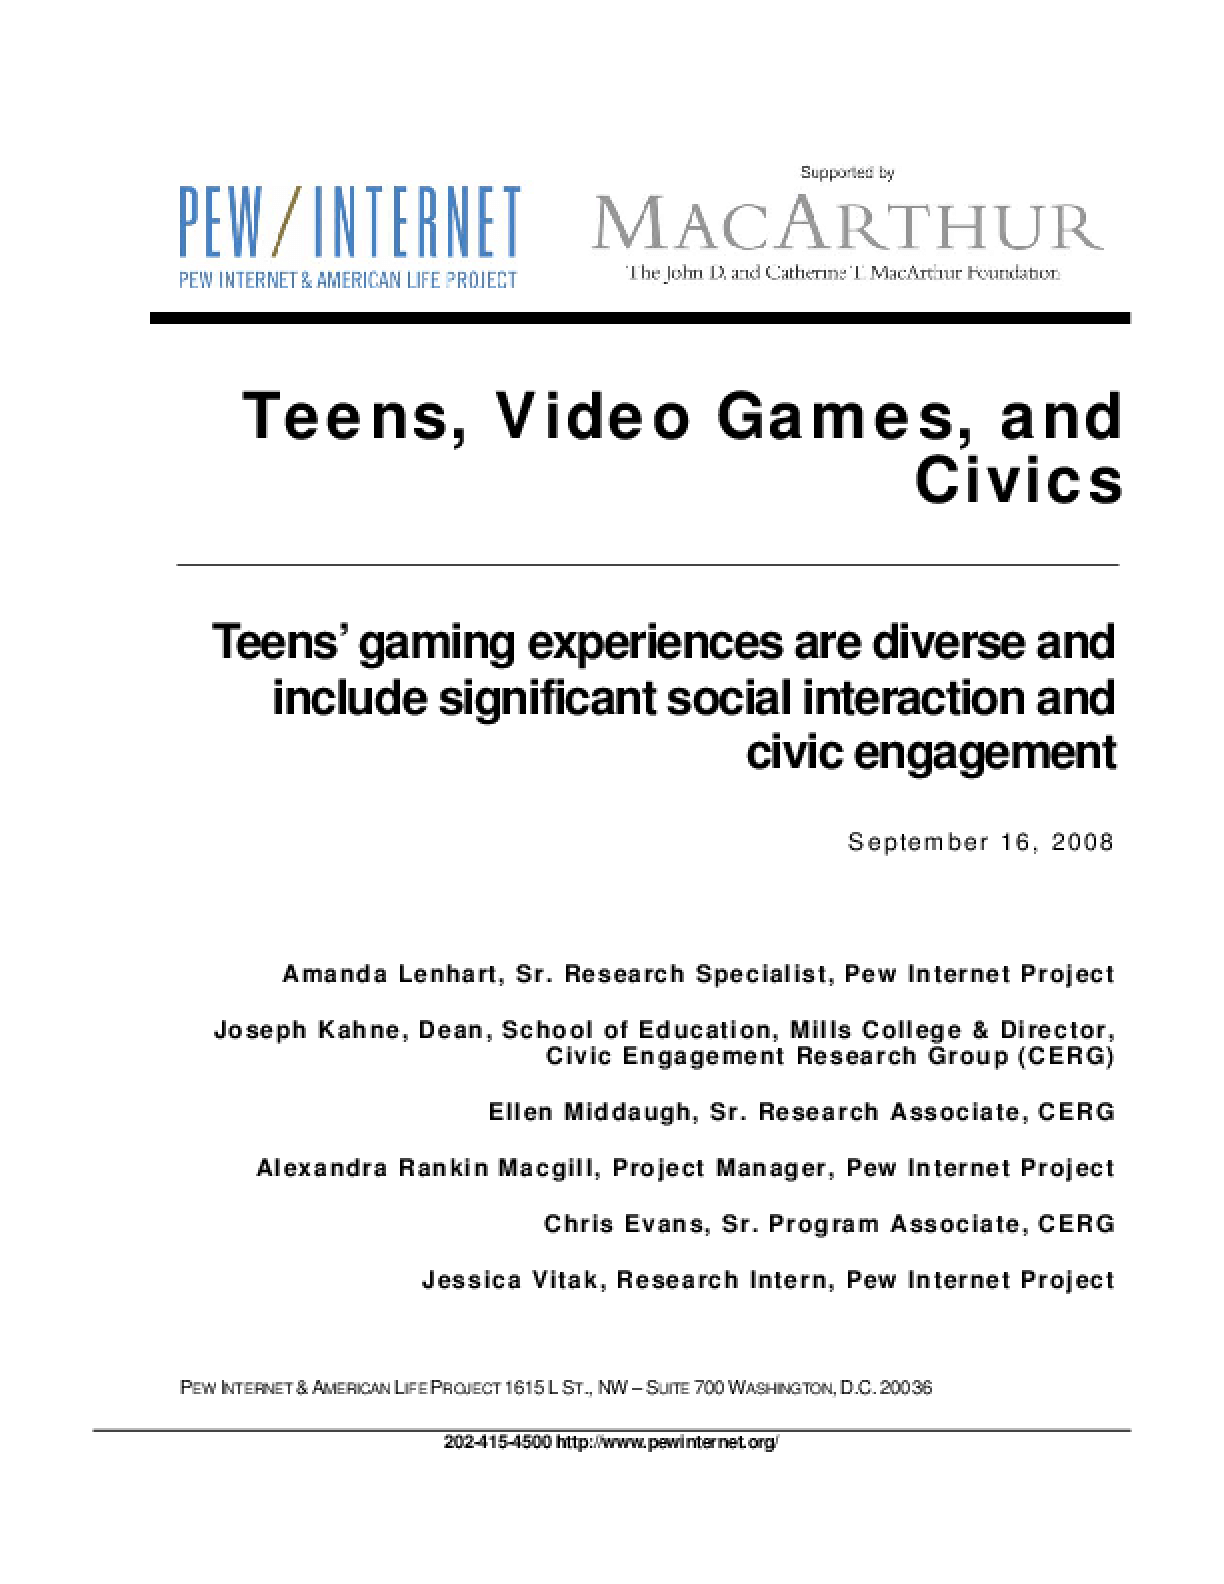 Teens, Video Games, and Civics